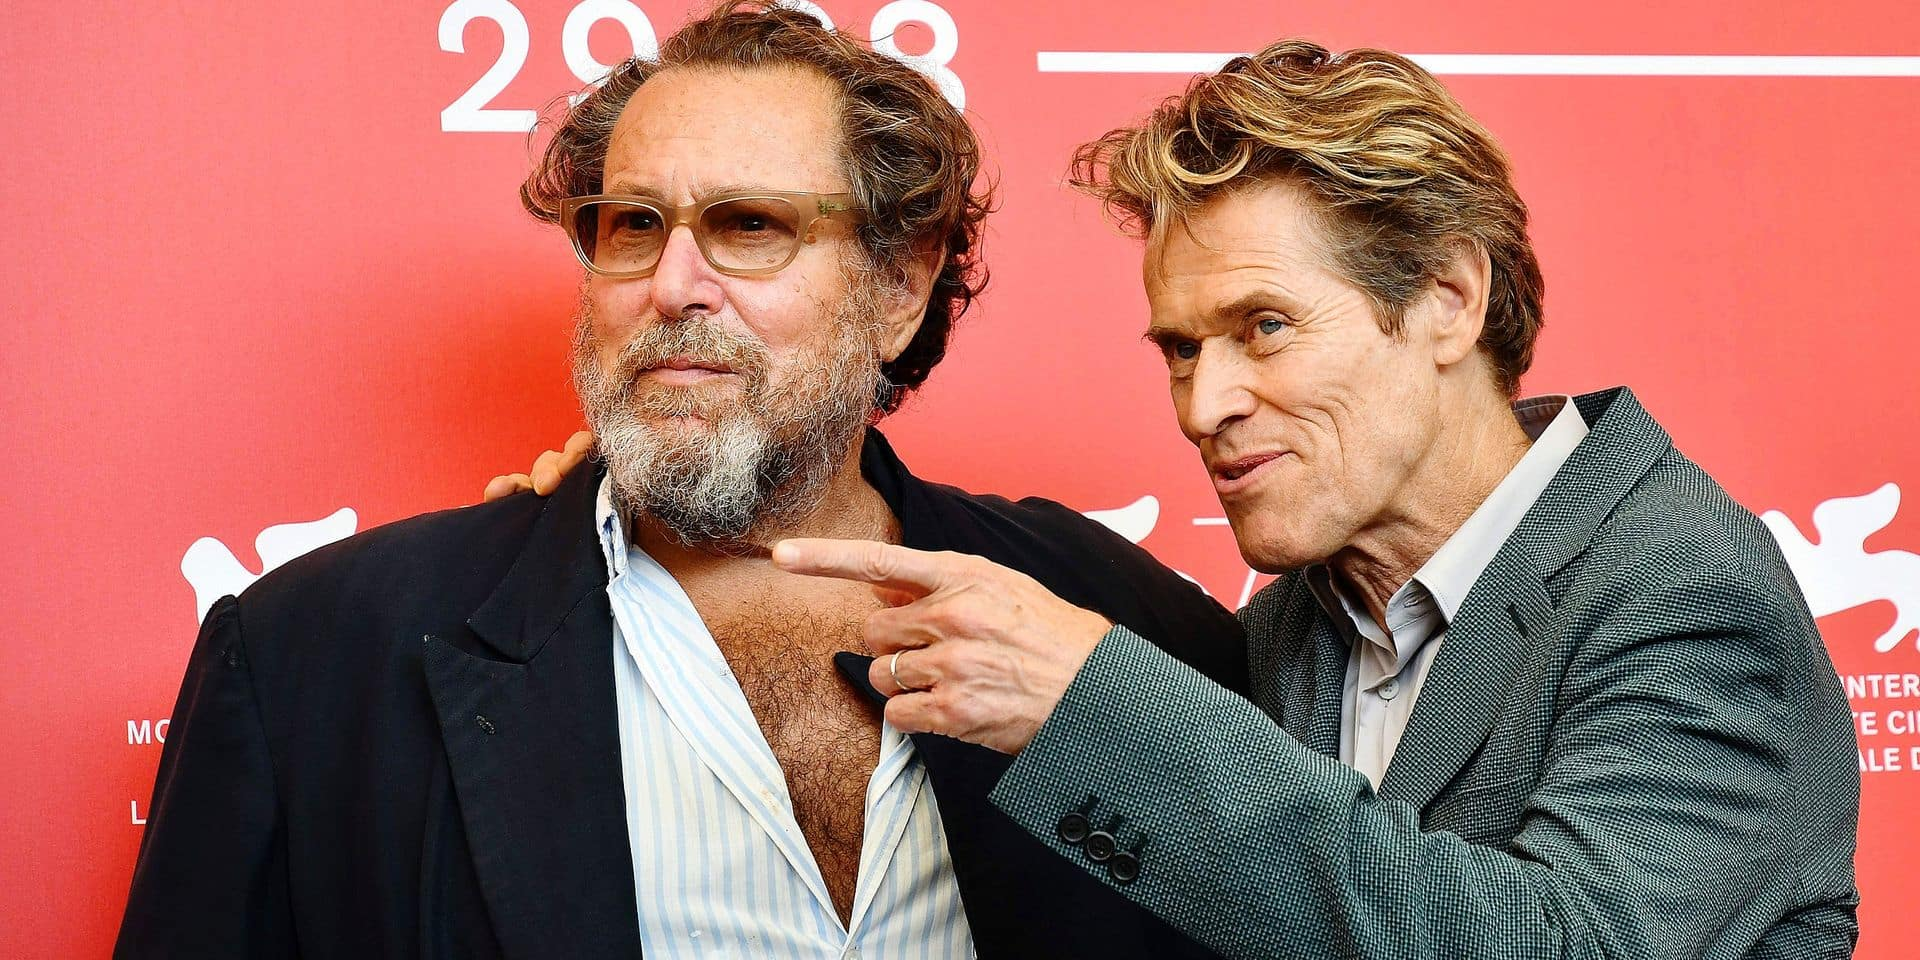 """Director Julian Schnabel (L) and actor Willem Dafoe attend a photocall for the film """"At Eternity's Gate"""" presented in competition on September 3, 2018 during the 75th Venice Film Festival at Venice Lido. (Photo by Alberto PIZZOLI / AFP)"""